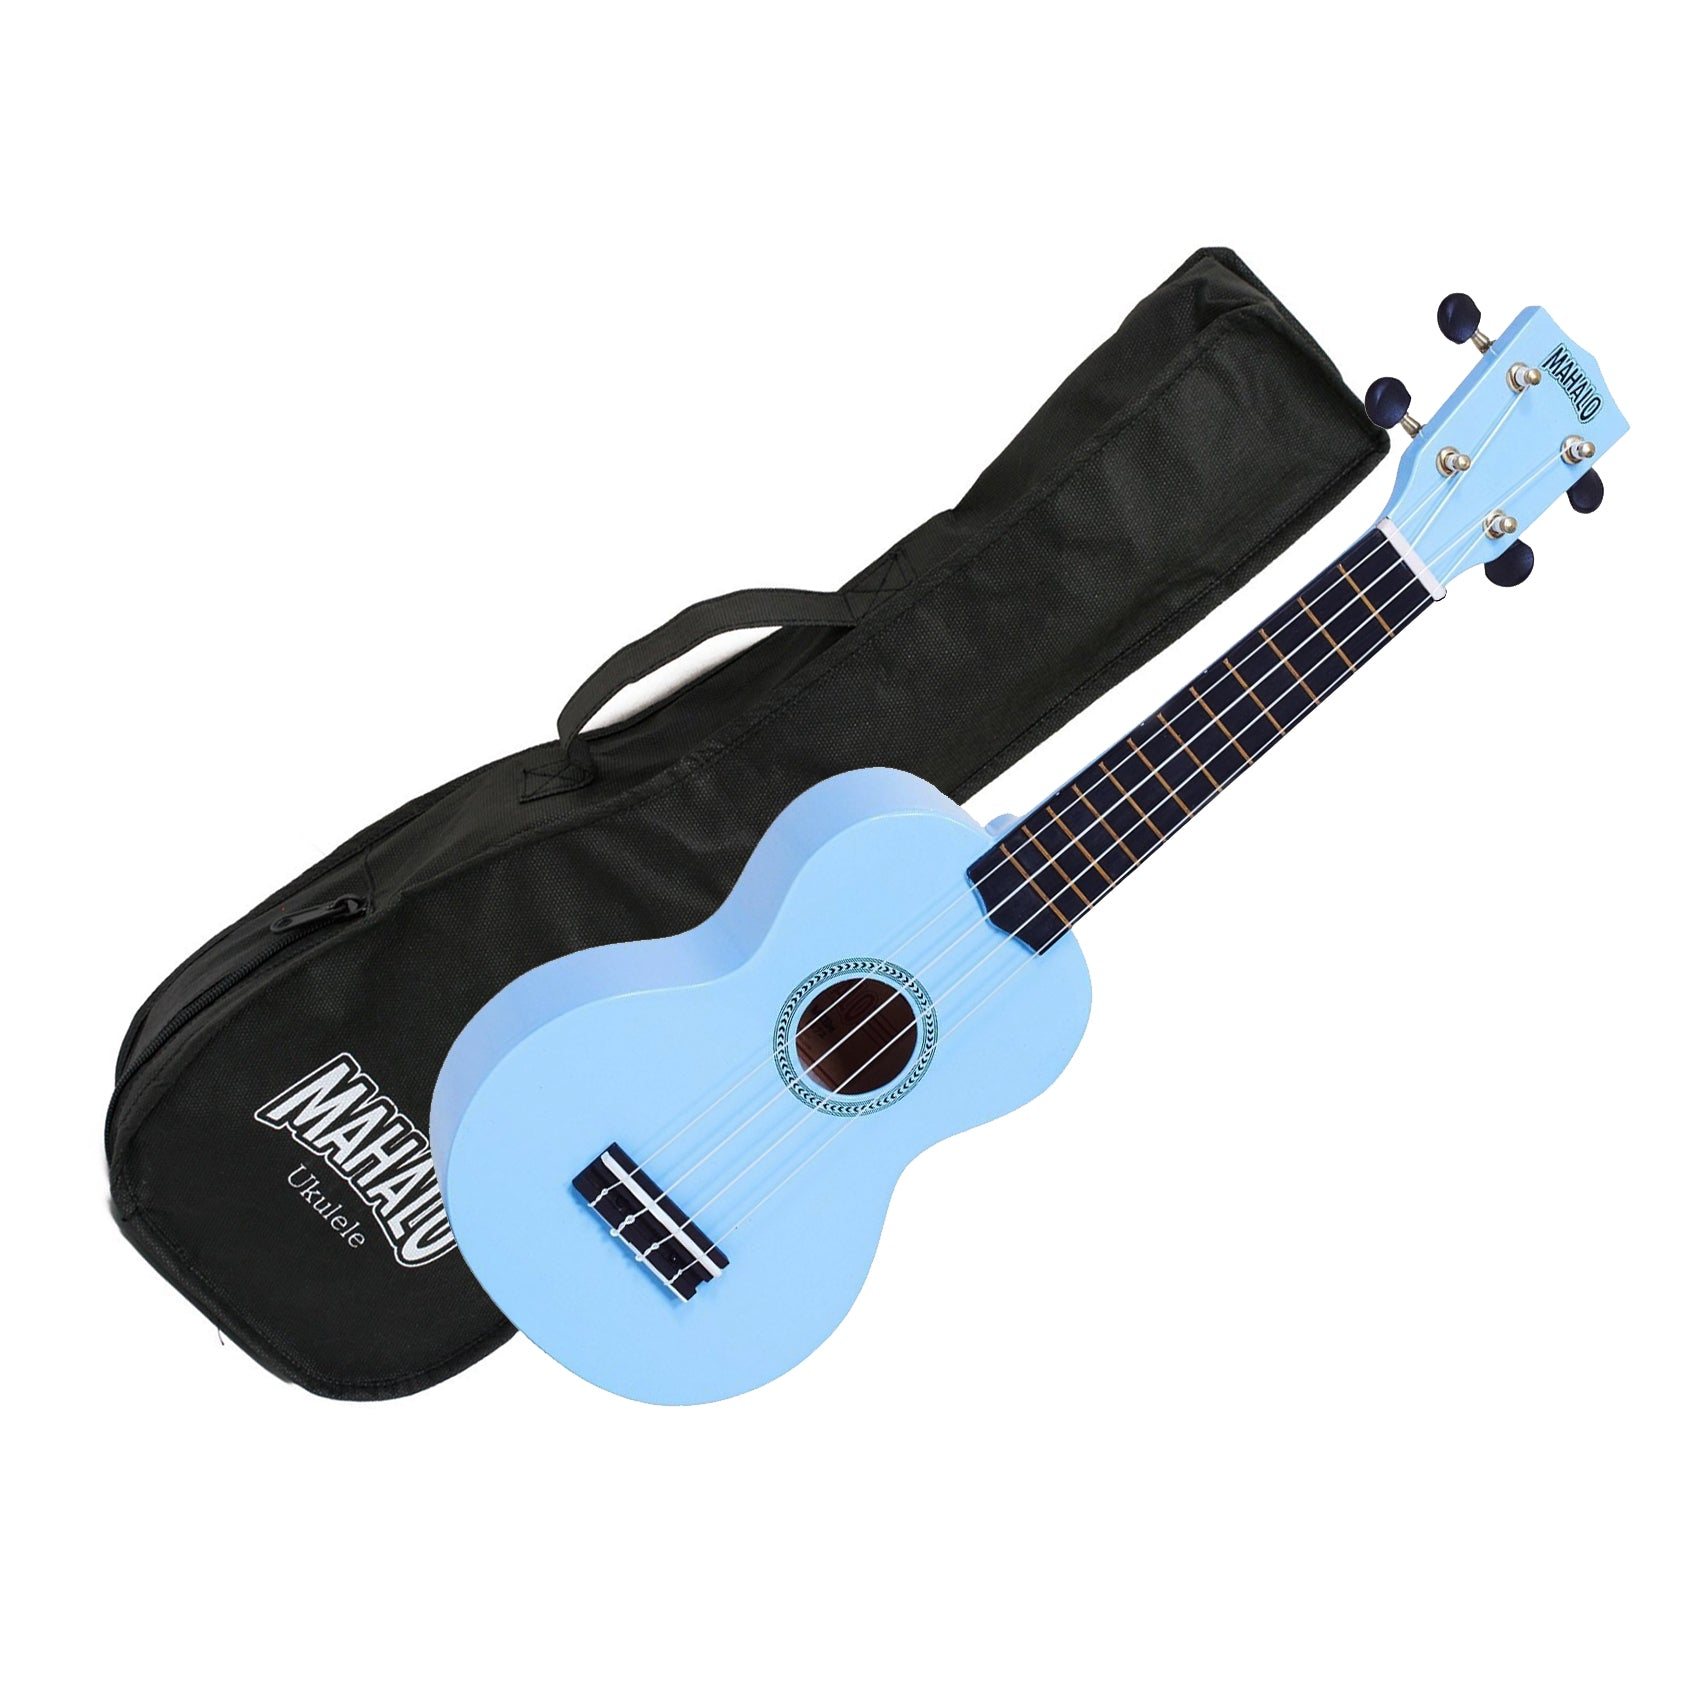 Mahalo MR1-LBU Soprano Ukulele w/ Bag - Light Blue